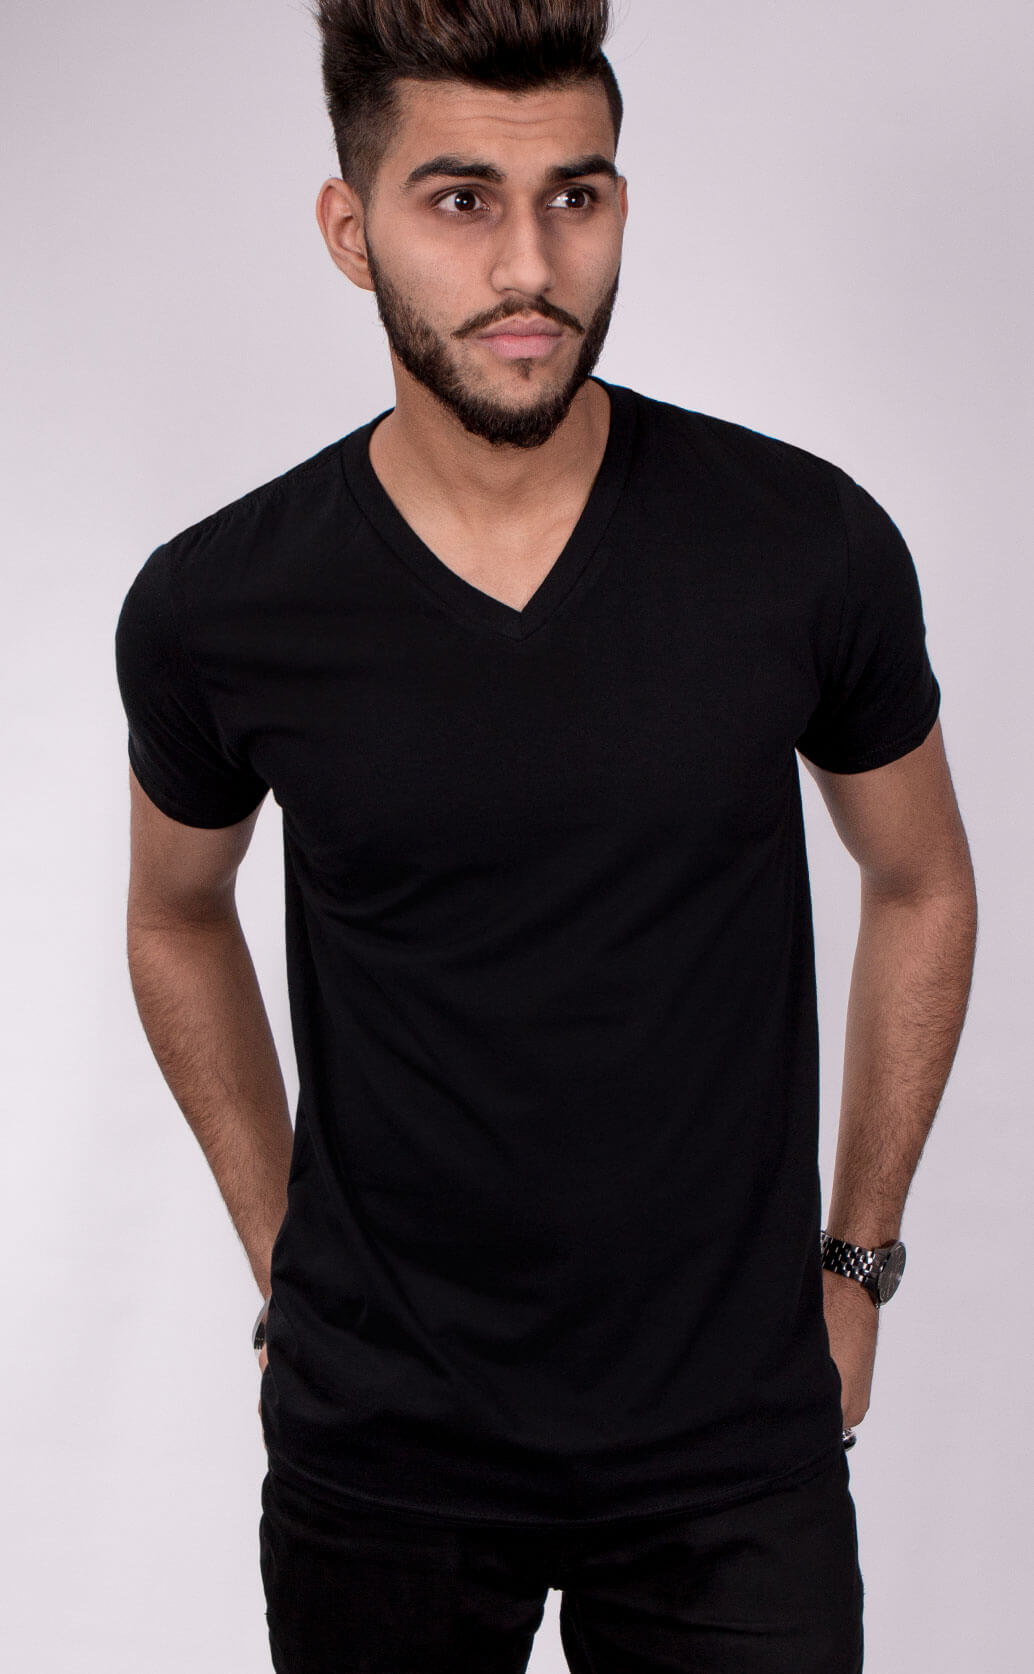 Size guide image for Mens Style Fit V Neck shirt type. Model is dressed in black